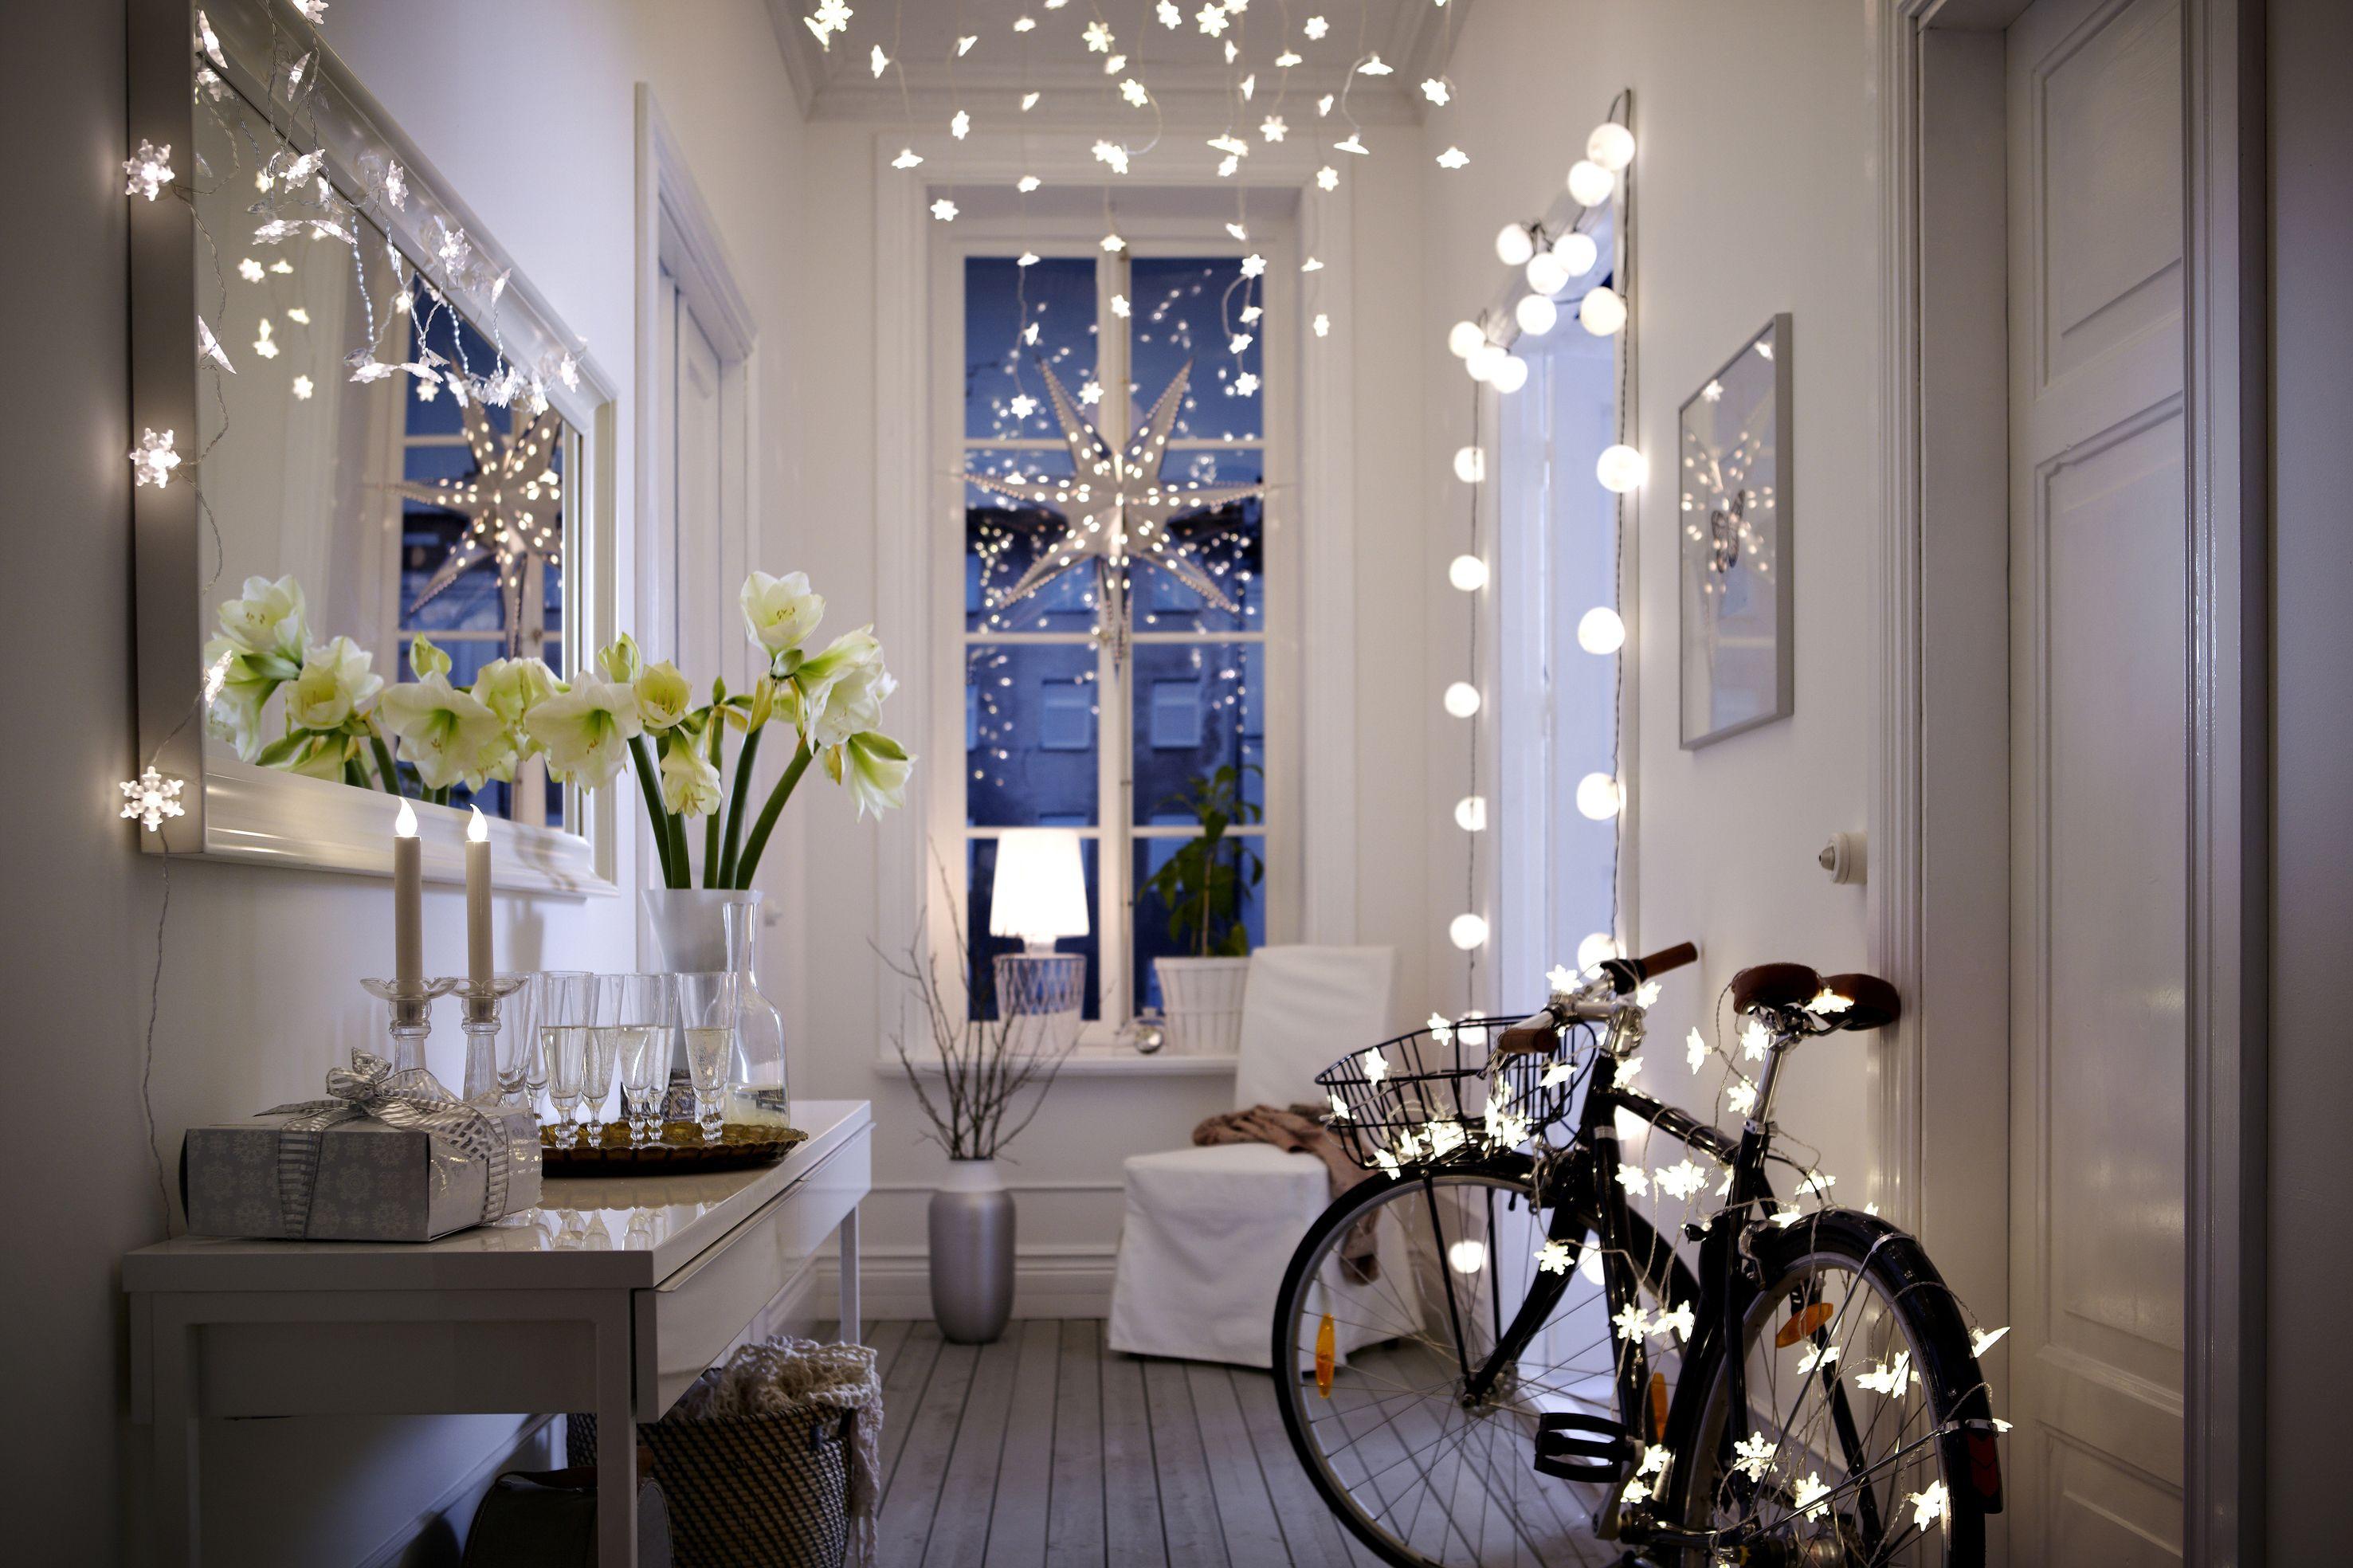 Ikea String Lights Mesmerizing Xmas Lighting With Ikea For The Home  Pinterest  Interiors Decorating Design